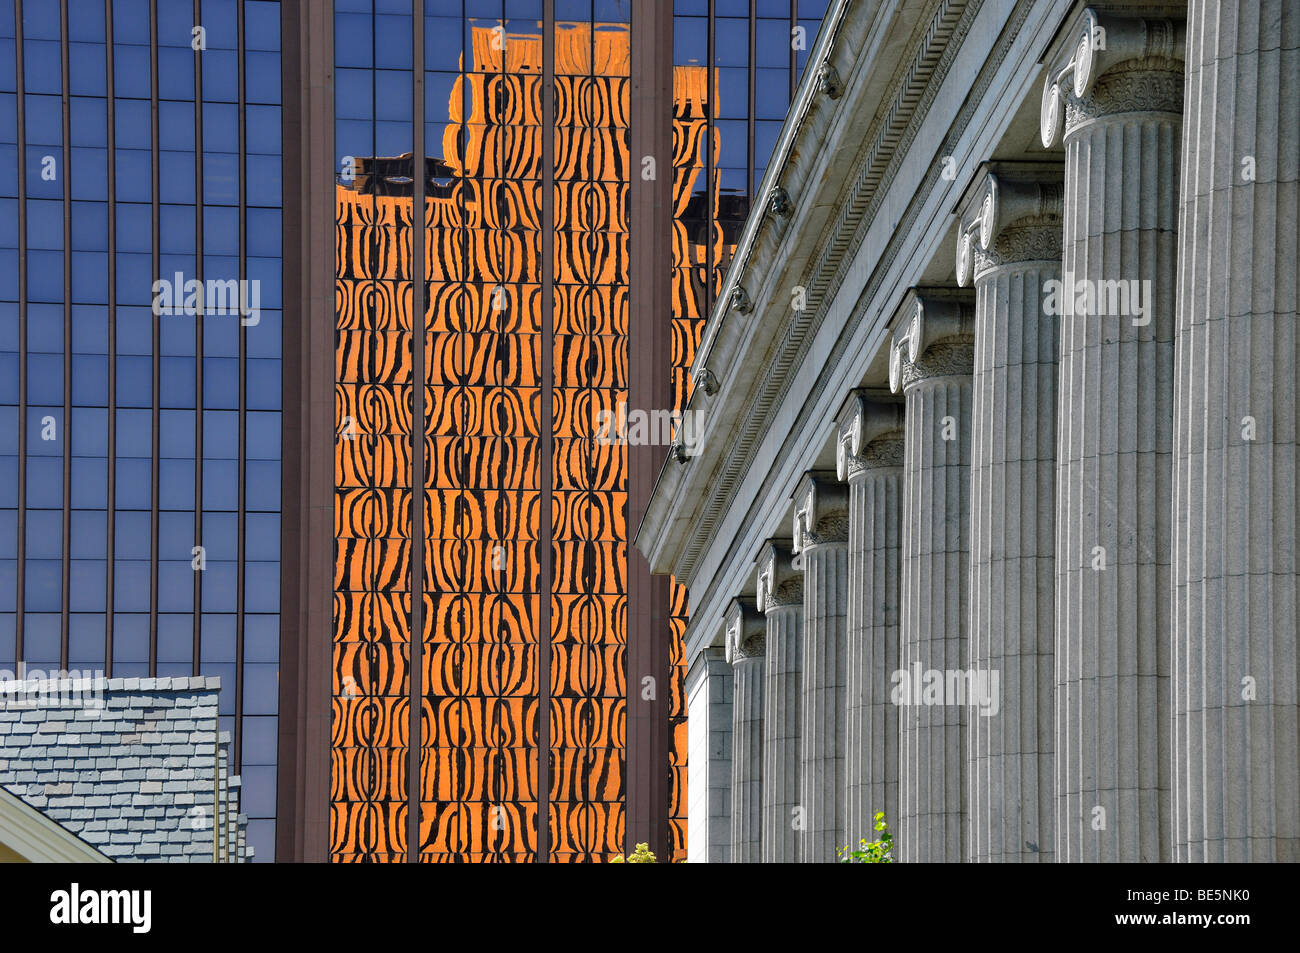 Architectural styles at The Temple Square, Salt Lake City, Utah, United States of America - Stock Image